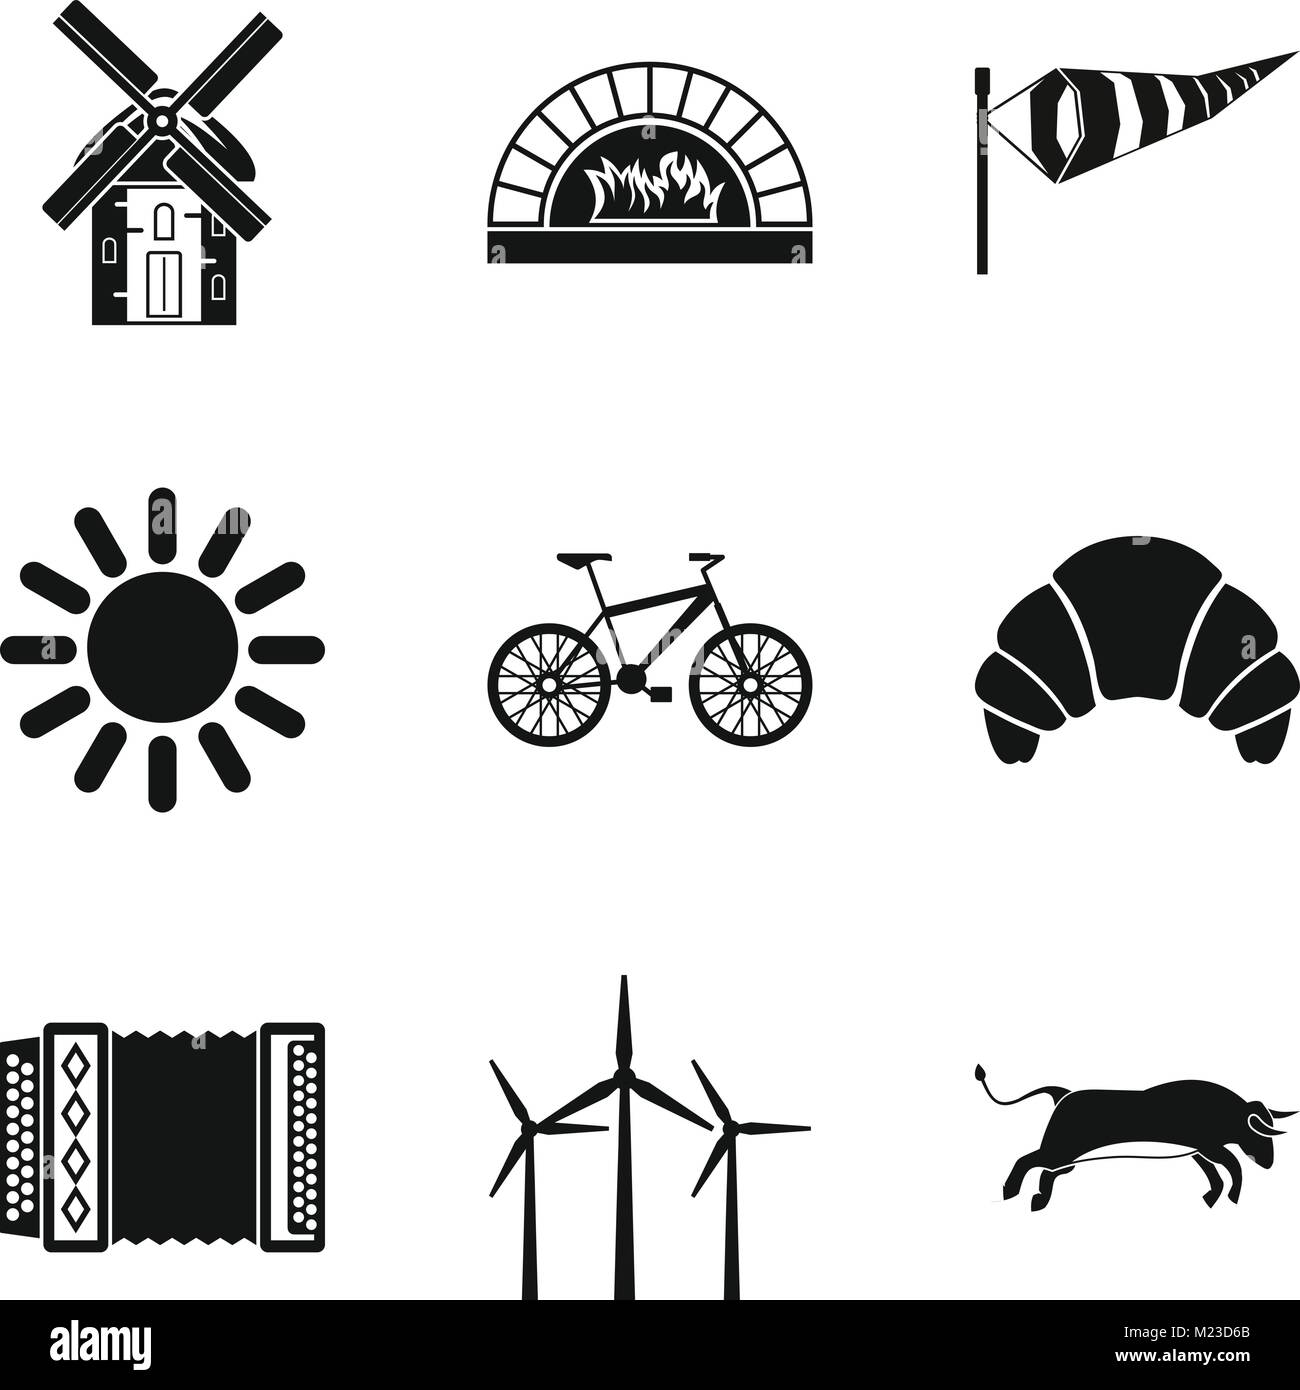 Rural locality icons set, simple style - Stock Vector